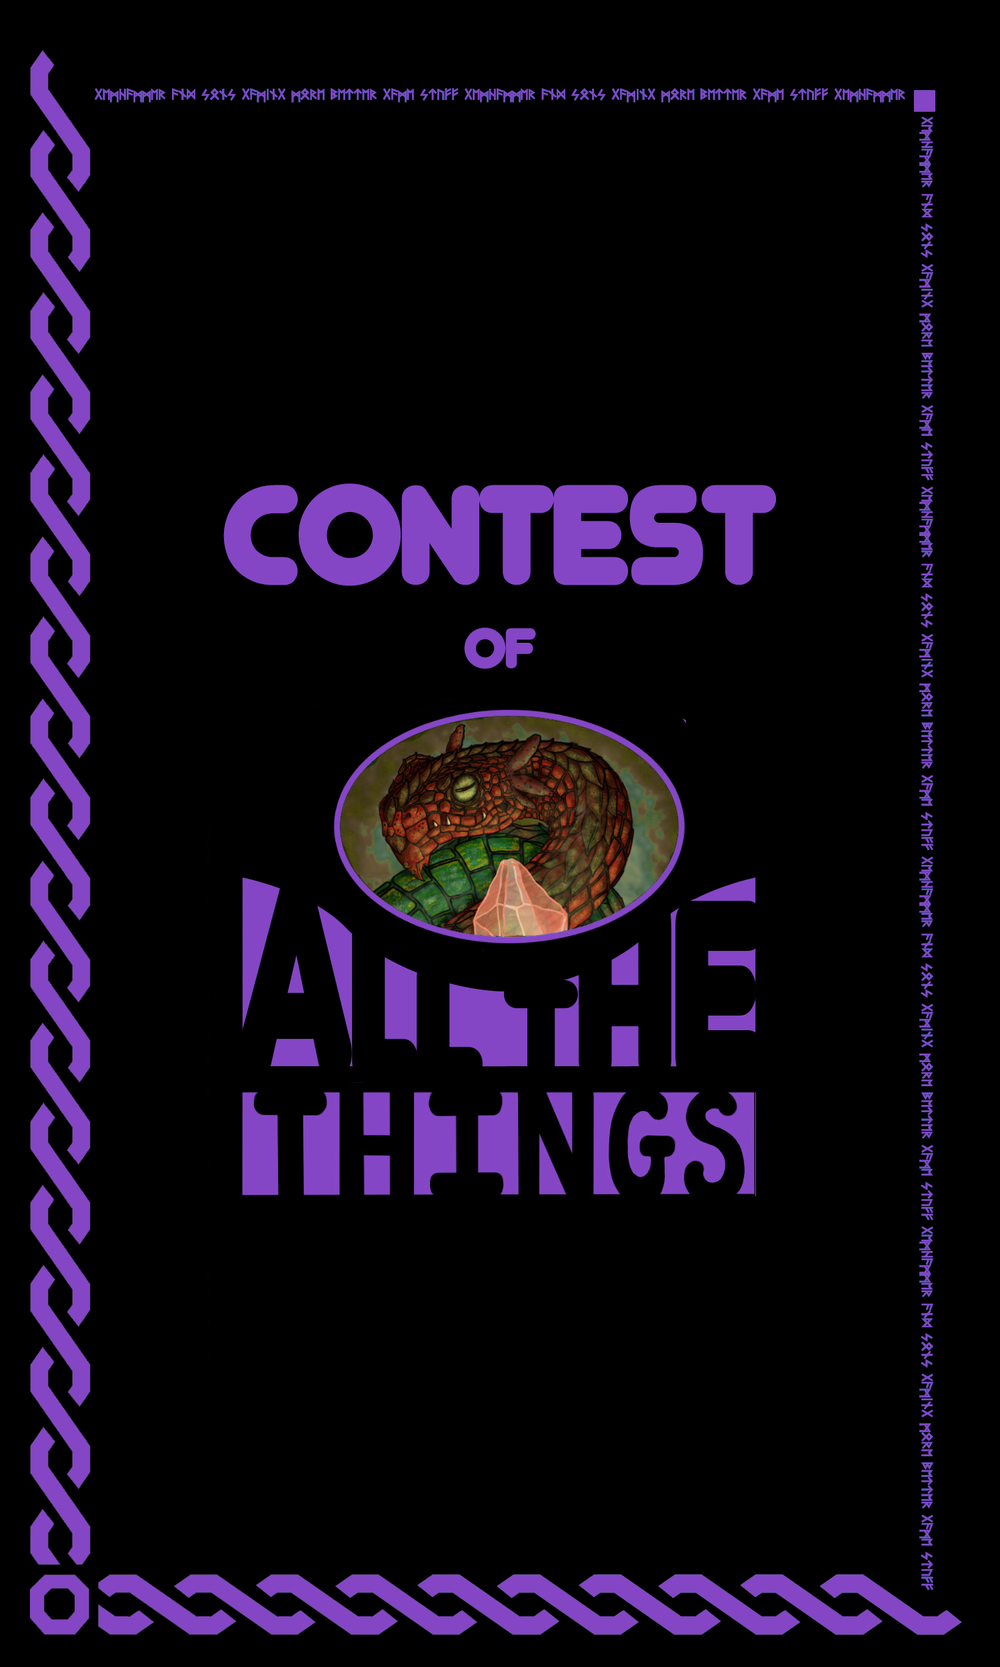 Your Effects on Our Cards! - As we outlined in last week's update, we're holding a contest in conjunction with our forthcoming Deck of All the Things. Back when we kickstarted the original Deck of Many Things, we offered a chance for people to have their very own card made and put into the deck. While that first kickstarter never went through, we wanted to bring back the concept for this new iteration of the deck. From today February 10th, 2018 until April 1st, 2018, community members will be able to submit their spell effect for entry into the contest. 5 lucky winners will have their effect made into a card in the deck, receive a free copy of the Deck of All the Things, AND receive a Gemhammer Dice T-shirt. Winners will be announced Live from the floor of PAX East on April 6th 2018. To enter, click the link below and fill out the entry form. One entry per person. No Purchase Necessary. Purchasing or preordering will not increase your chance of winning.